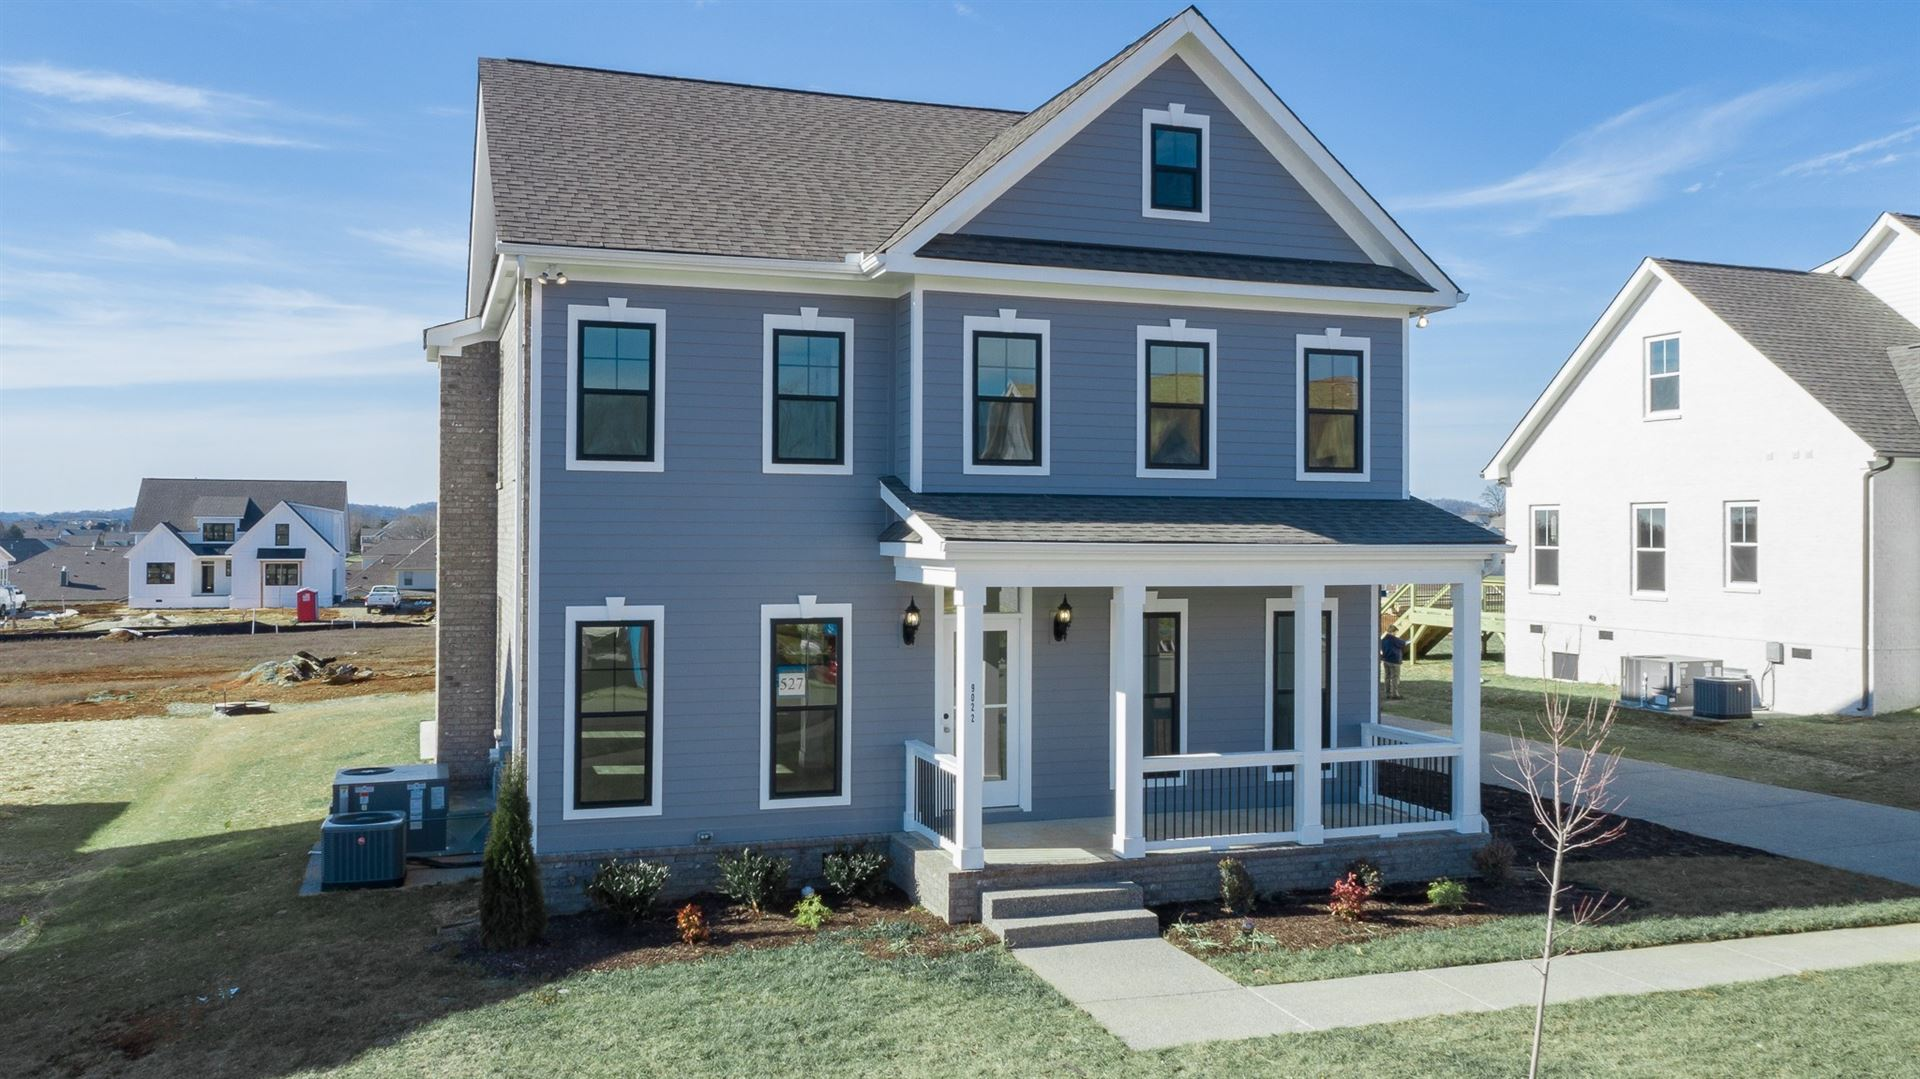 Photo of 8006 Brightwater Way Lot 481, Spring Hill, TN 37174 (MLS # 2261312)